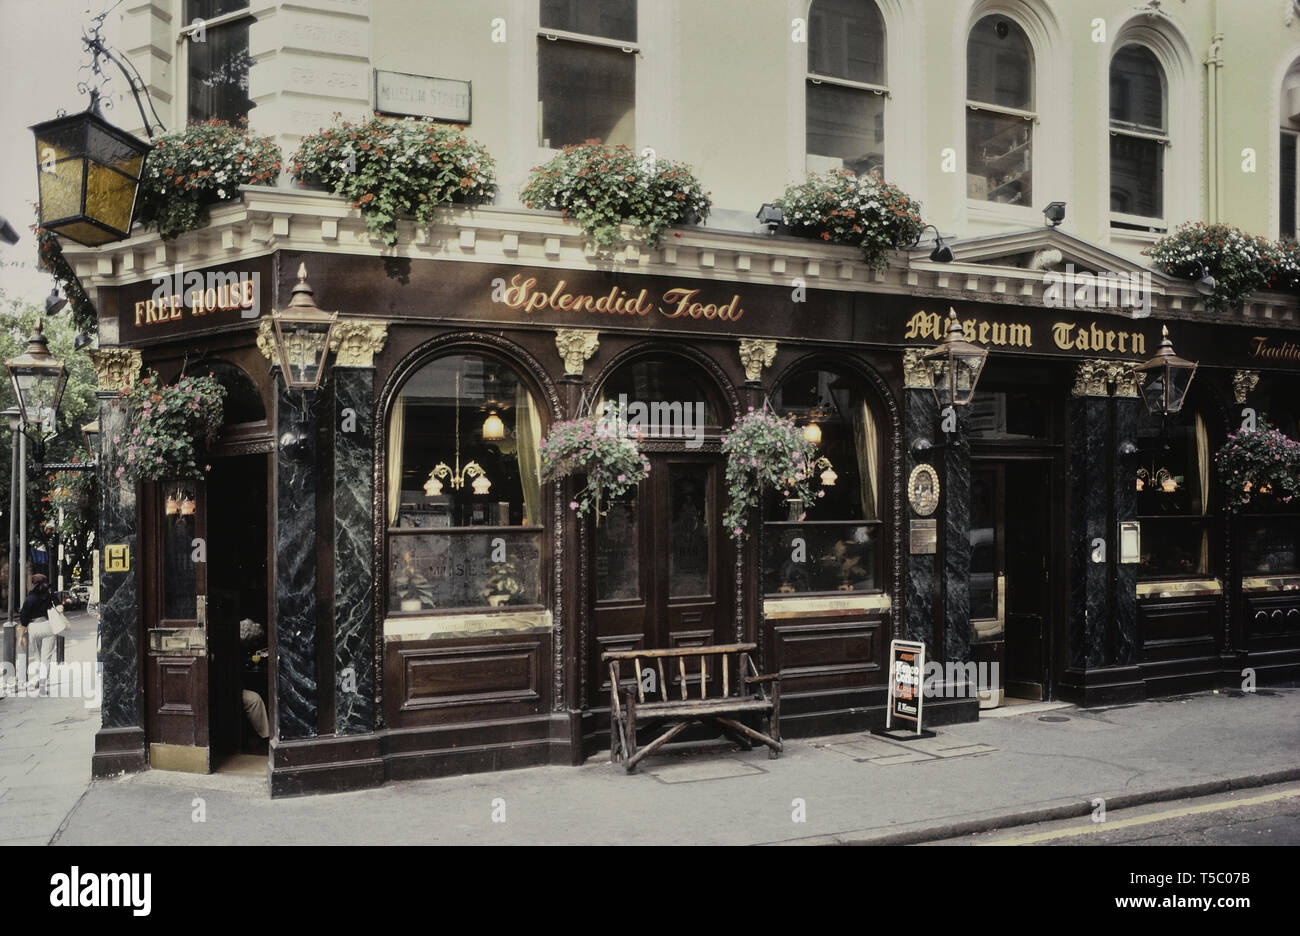 Museum Tavern, Holborn, London, England, UK. Circa 1980's - Stock Image